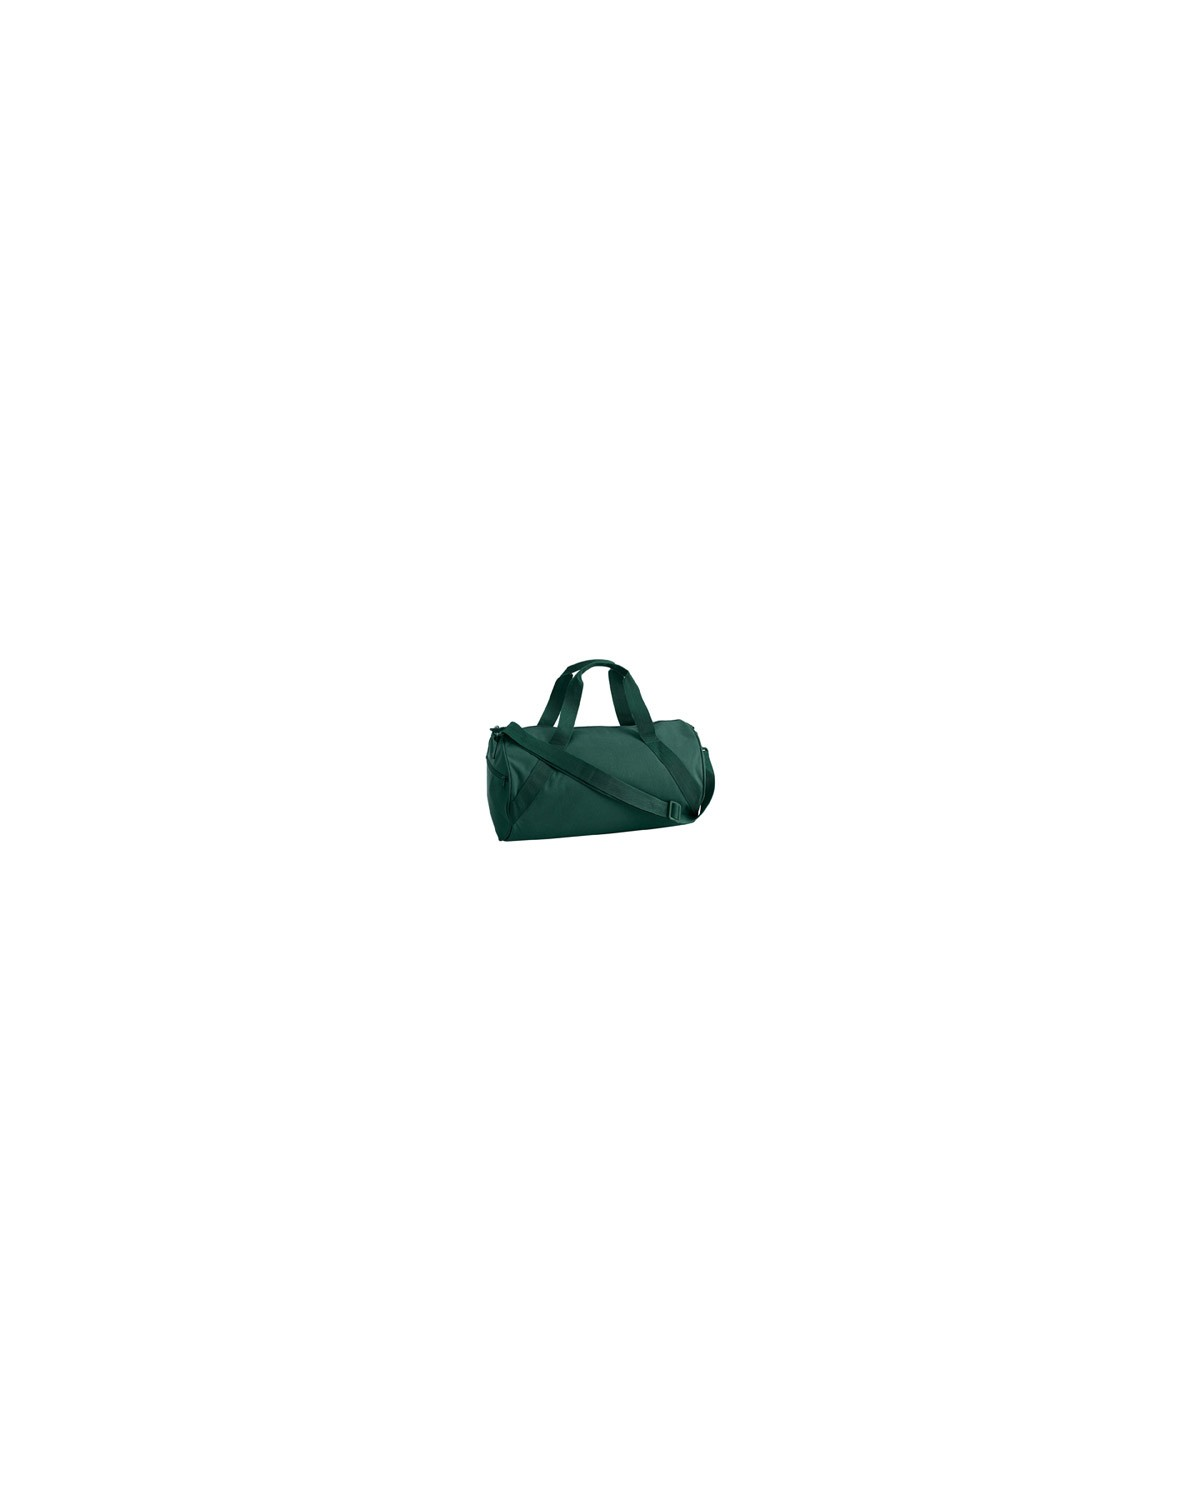 8805 Liberty Bags FOREST